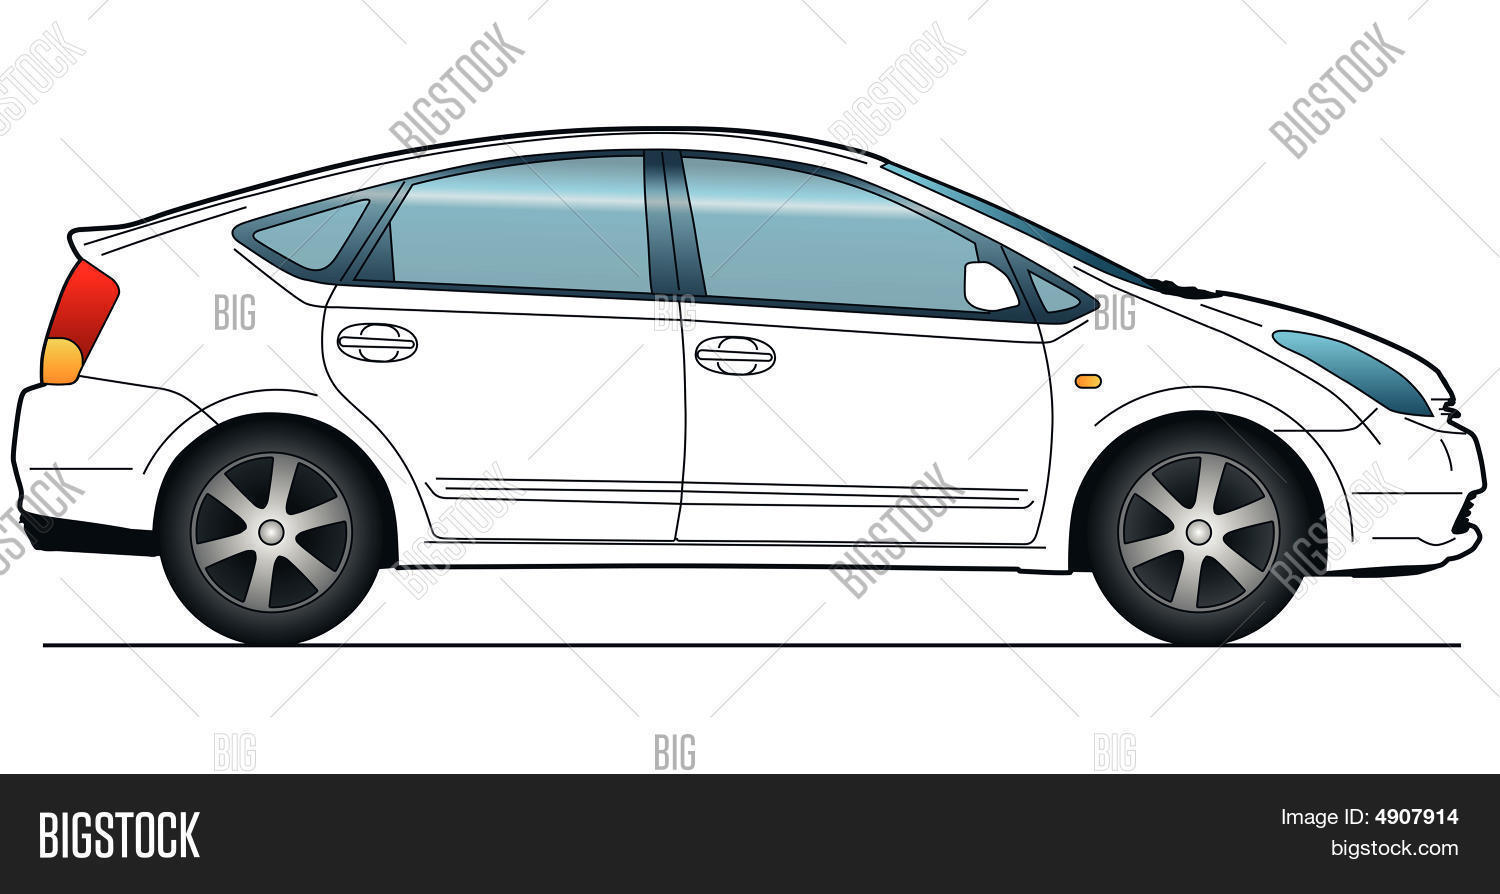 Car side view images illustrations vectors car side view stock city car template pronofoot35fo Choice Image